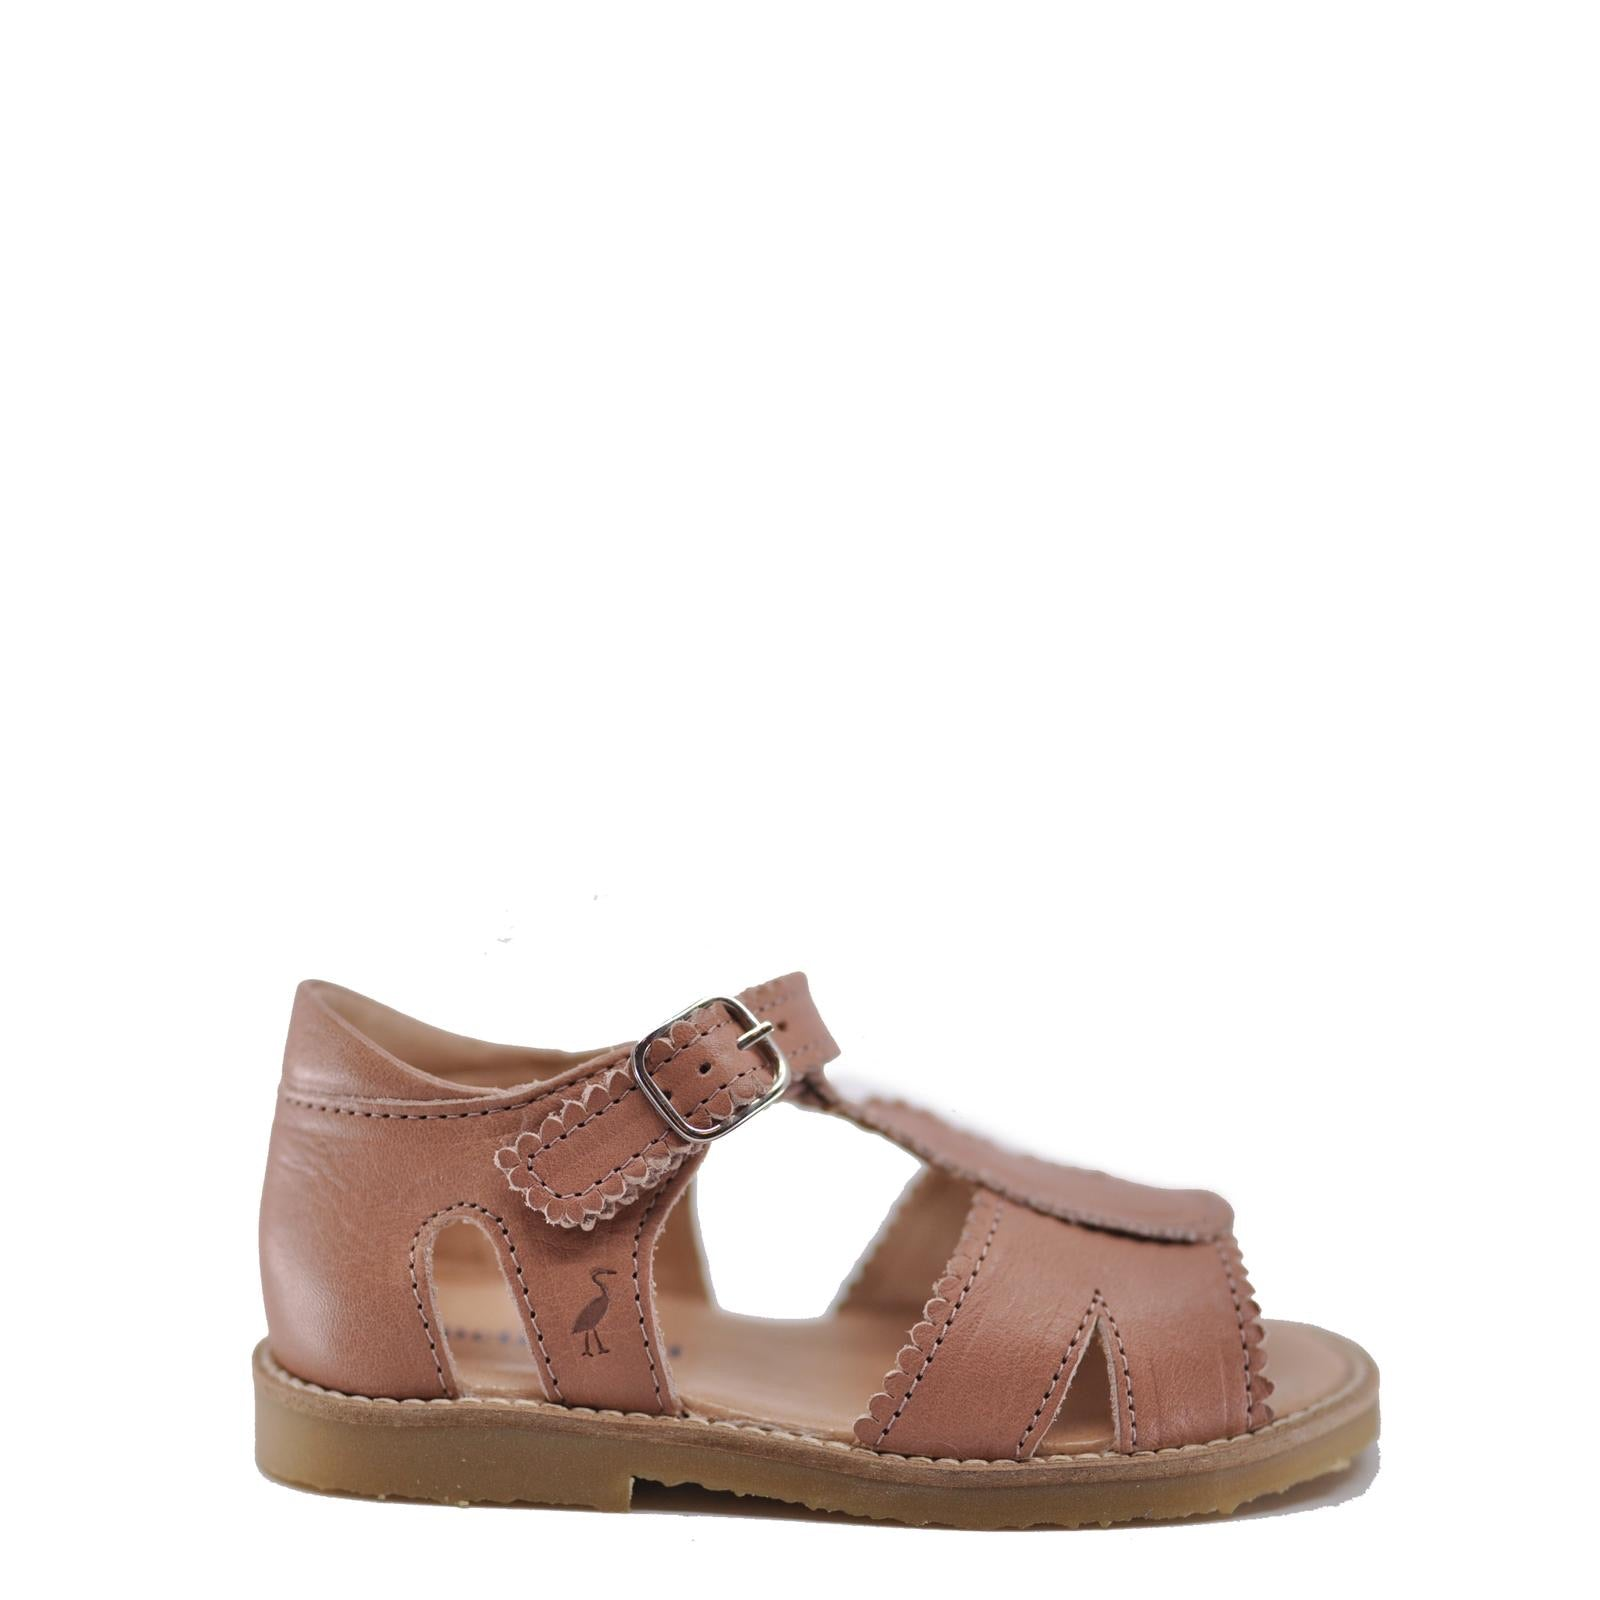 Petit Nord Rose Scalloped T-Strap Sandal-Tassel Children Shoes